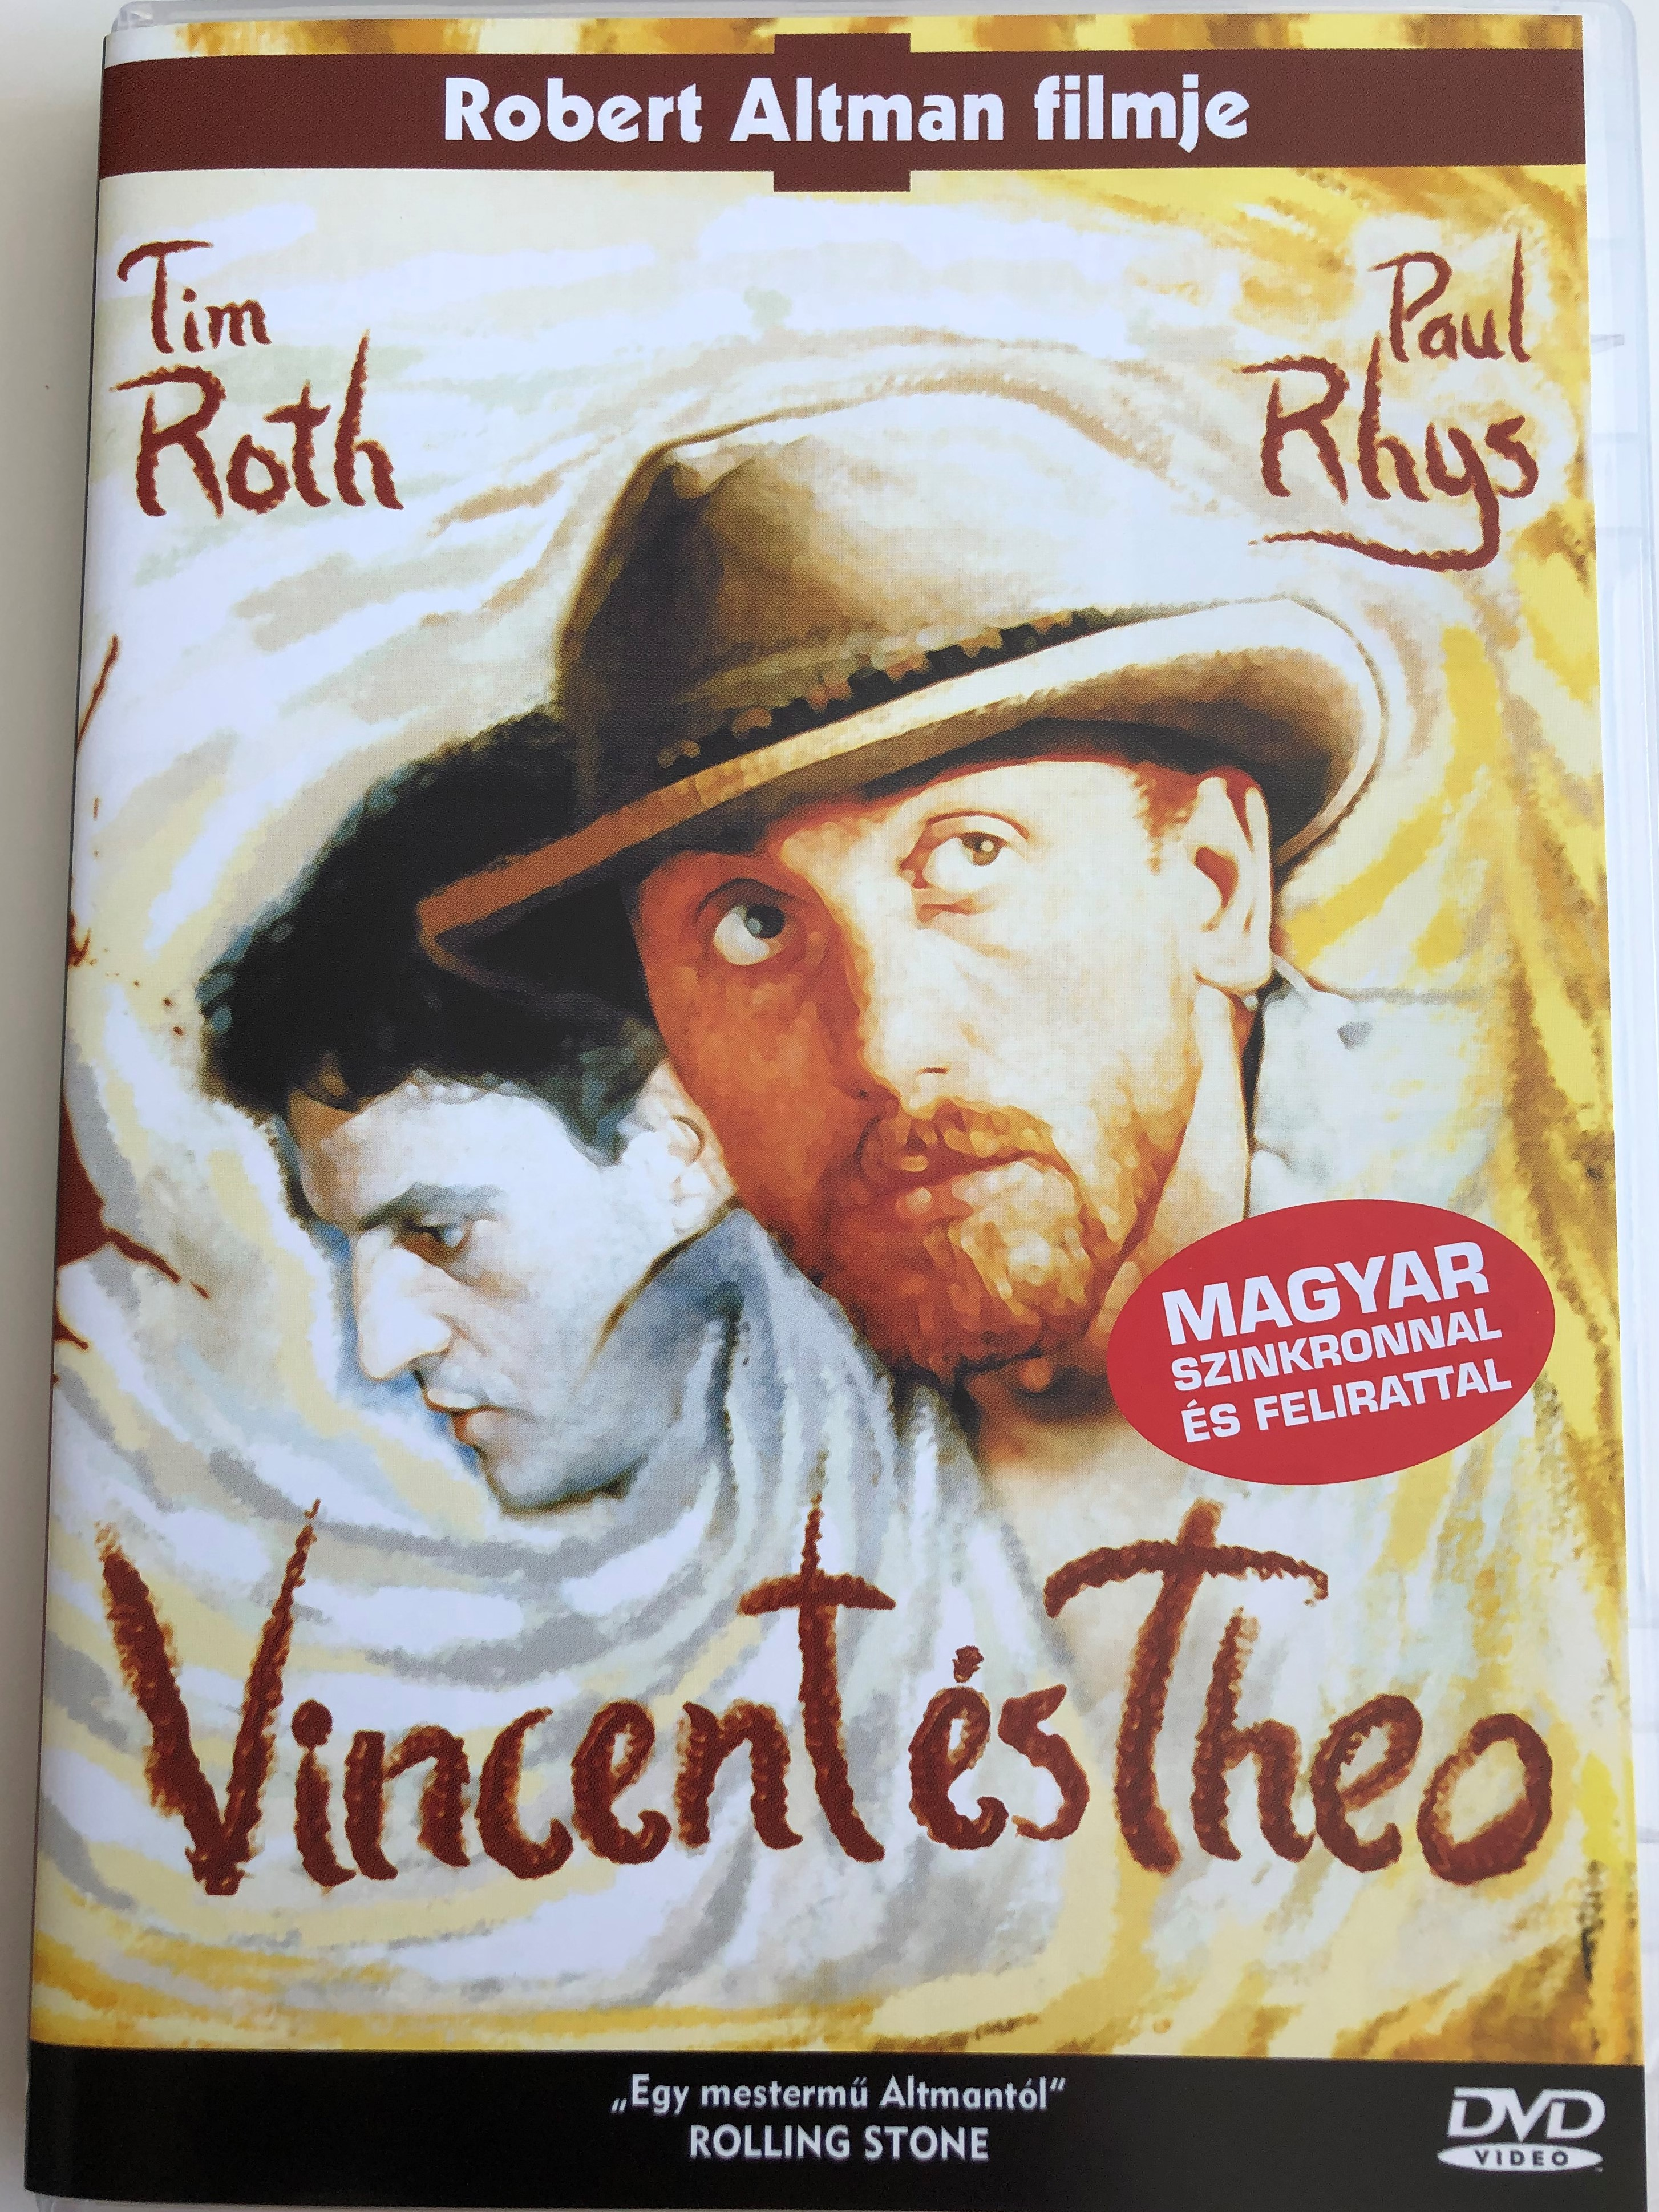 vincent-and-theo-dvd-1990-vincent-s-theo-directed-by-robert-altman-starring-tim-roth-paul-rhys-1-.jpg